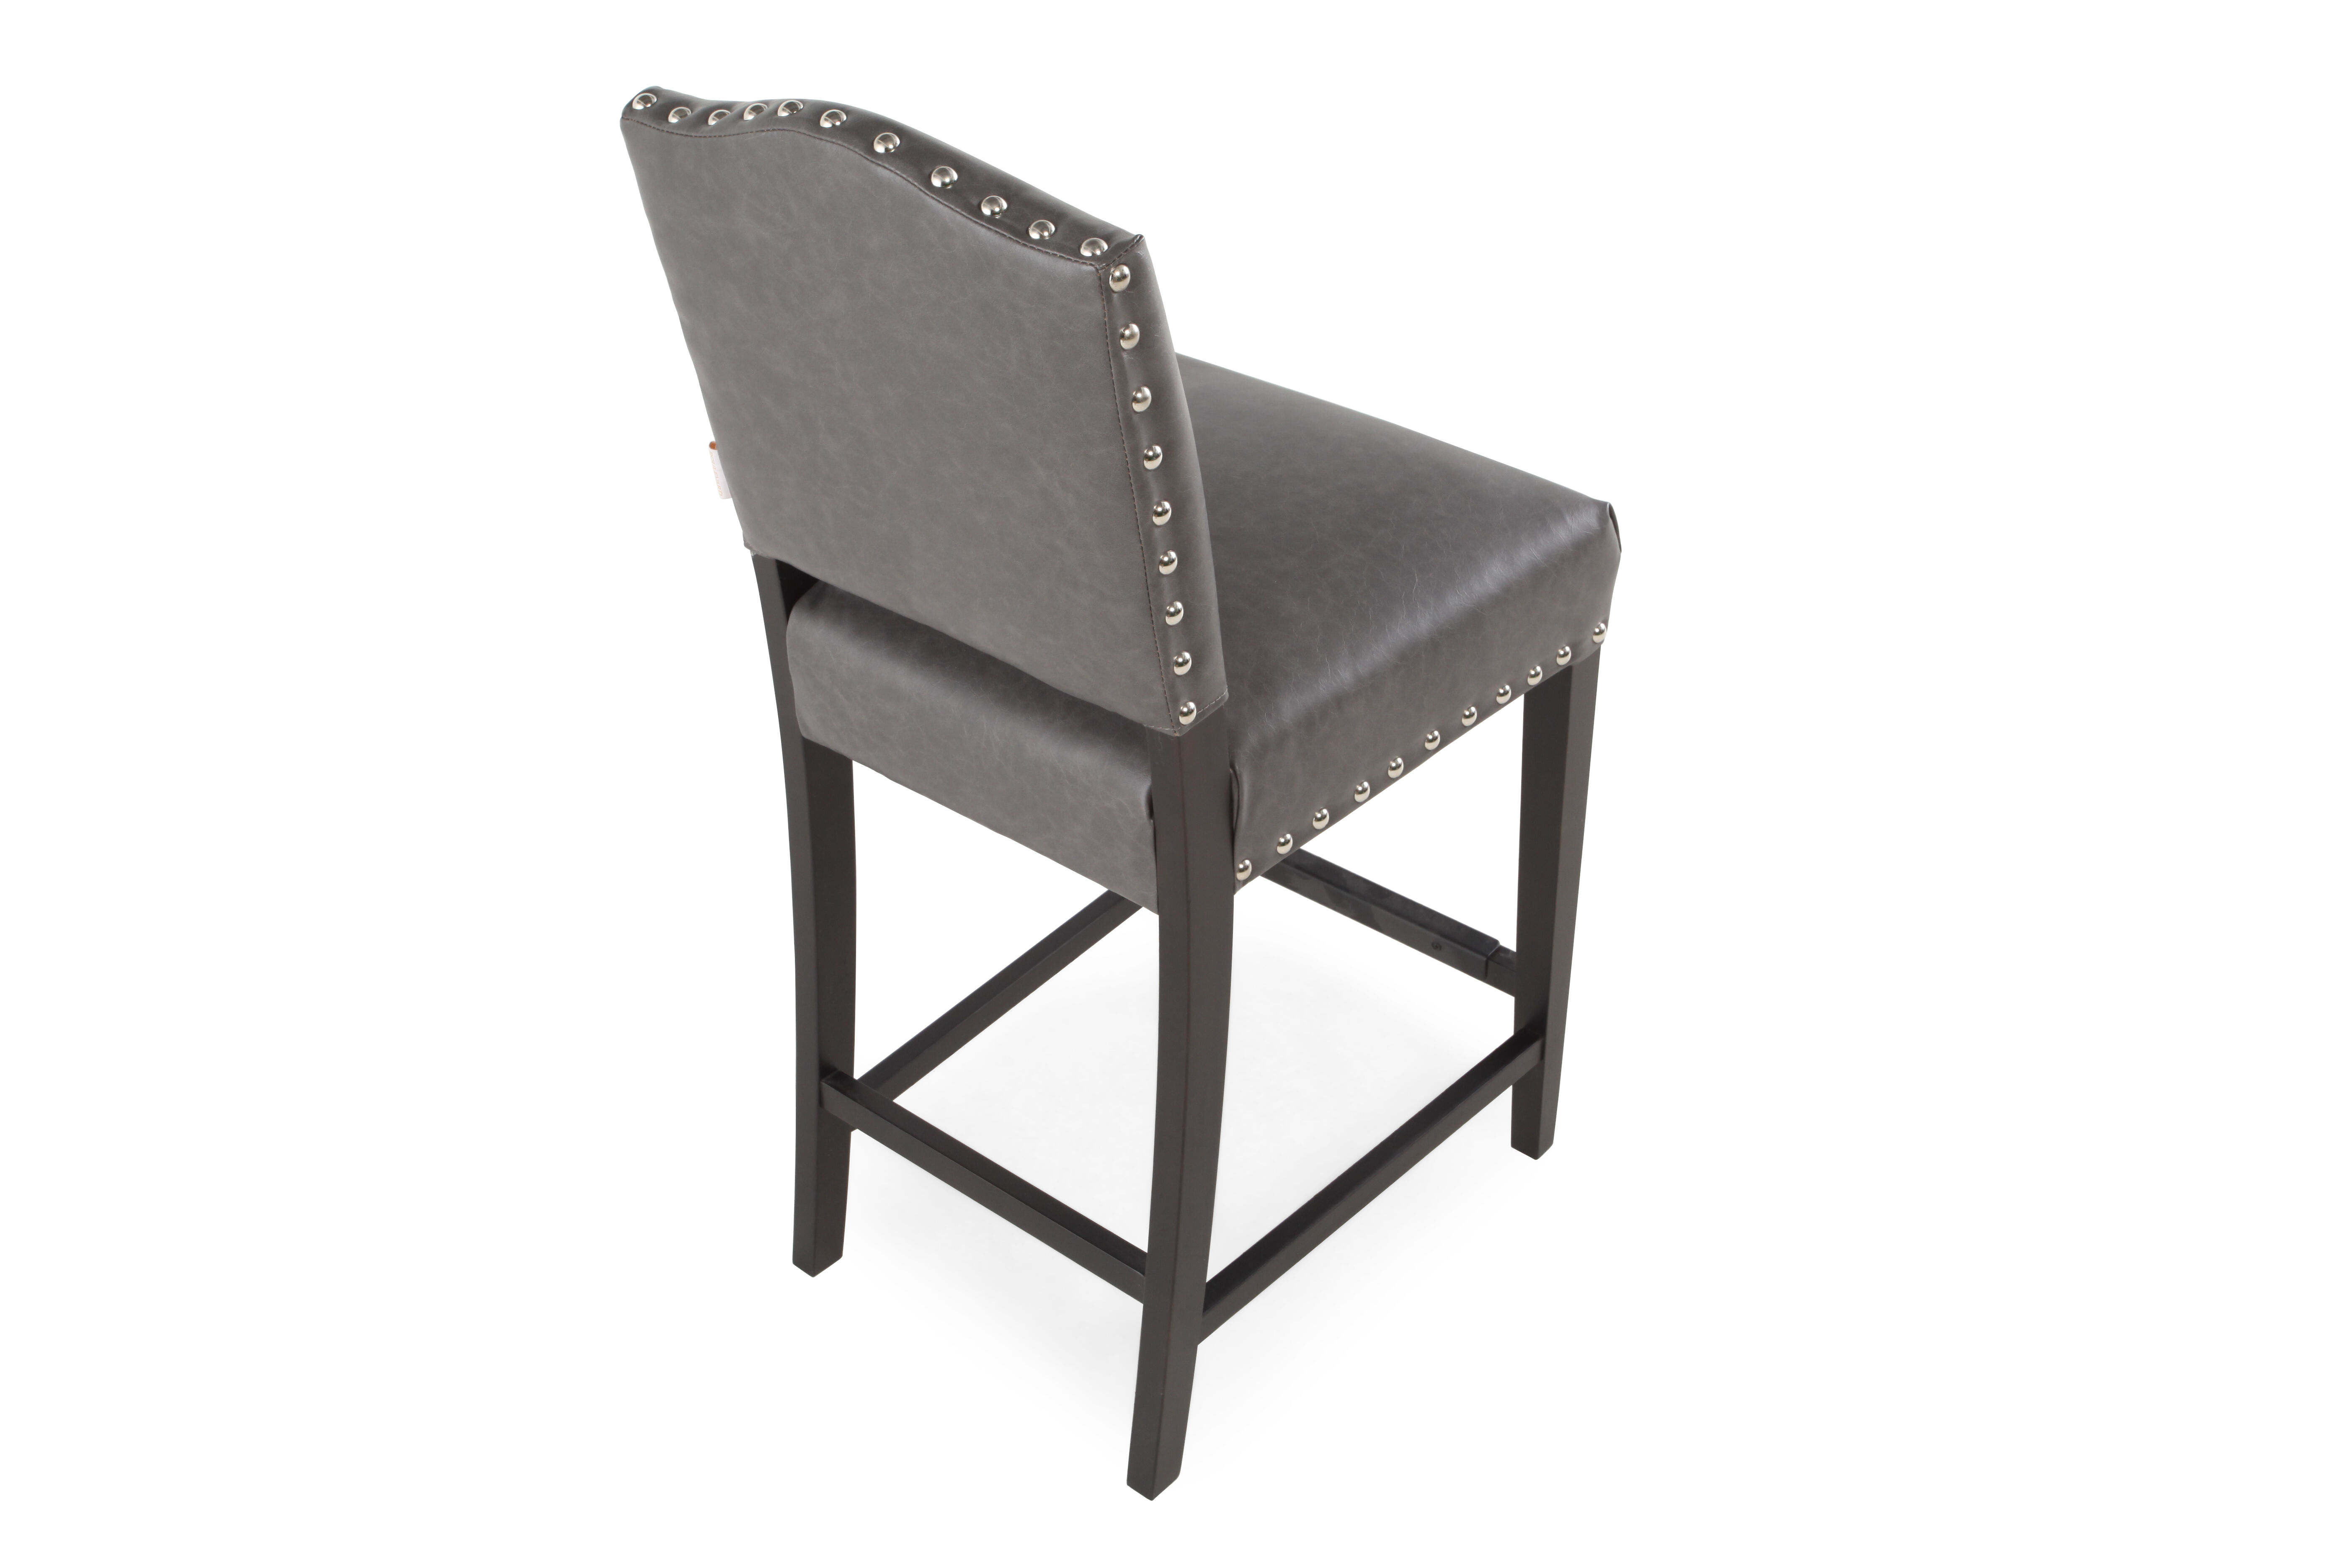 Boulevard Gray Leather Counter Stool  sc 1 st  Mathis Brothers & Boulevard Gray Leather Counter Stool | Mathis Brothers Furniture islam-shia.org